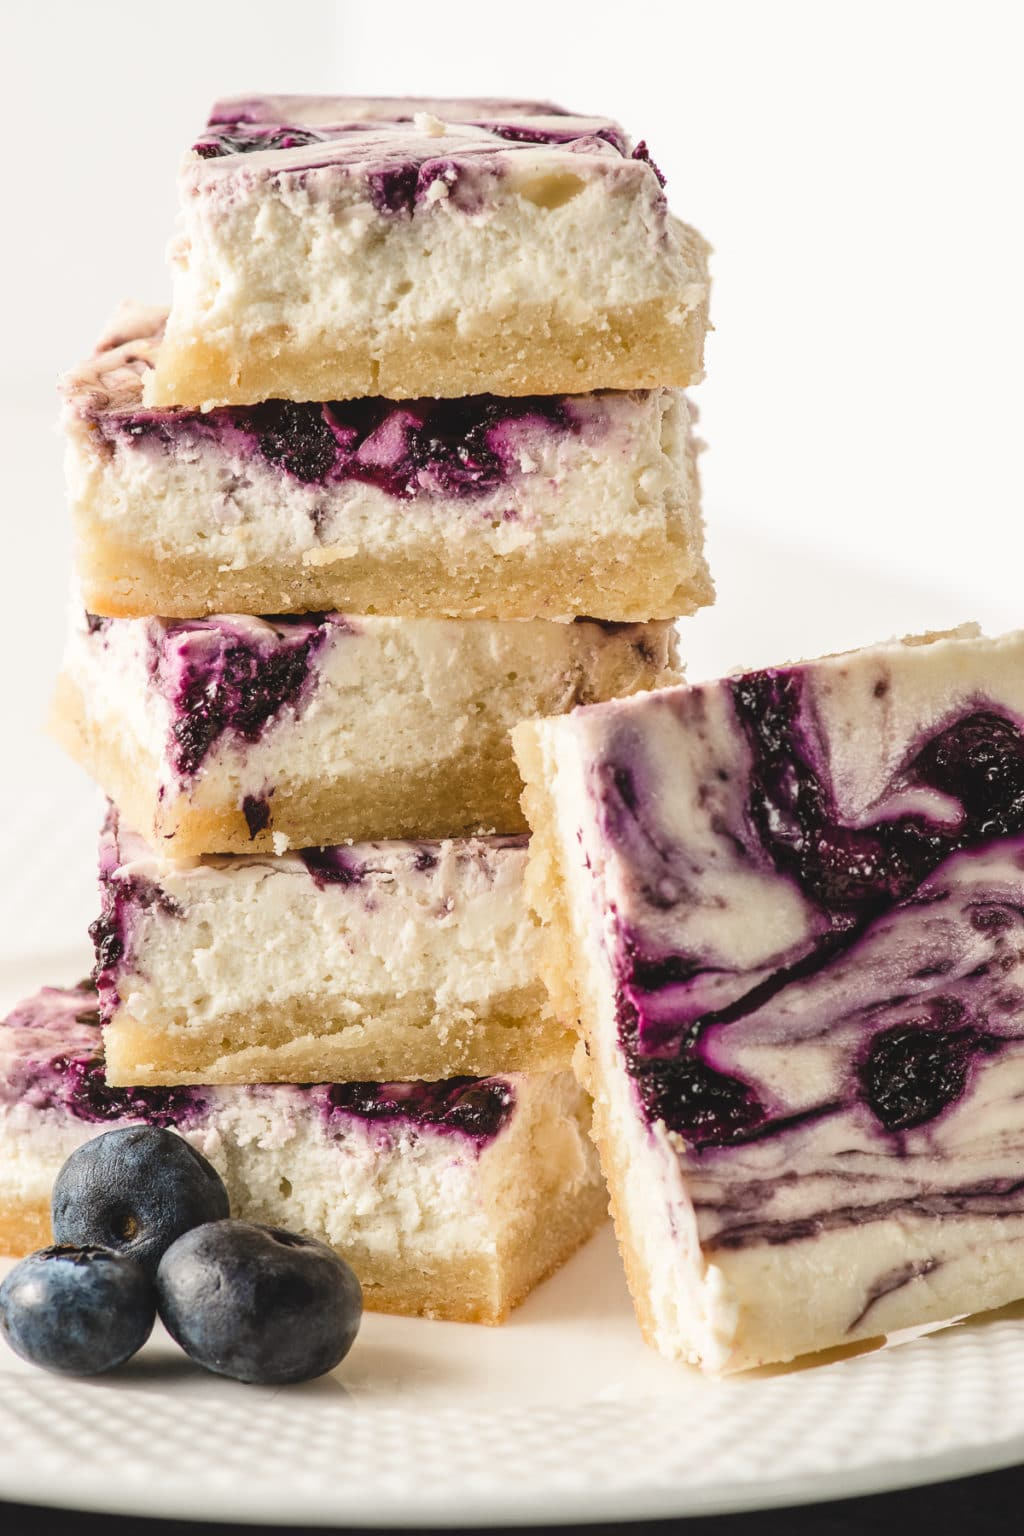 On a white, textured plate is a stack of creamy, sugar-free, blueberry cheesecake bars. A few scattered, fresh blueberries are piled in front of the bars.